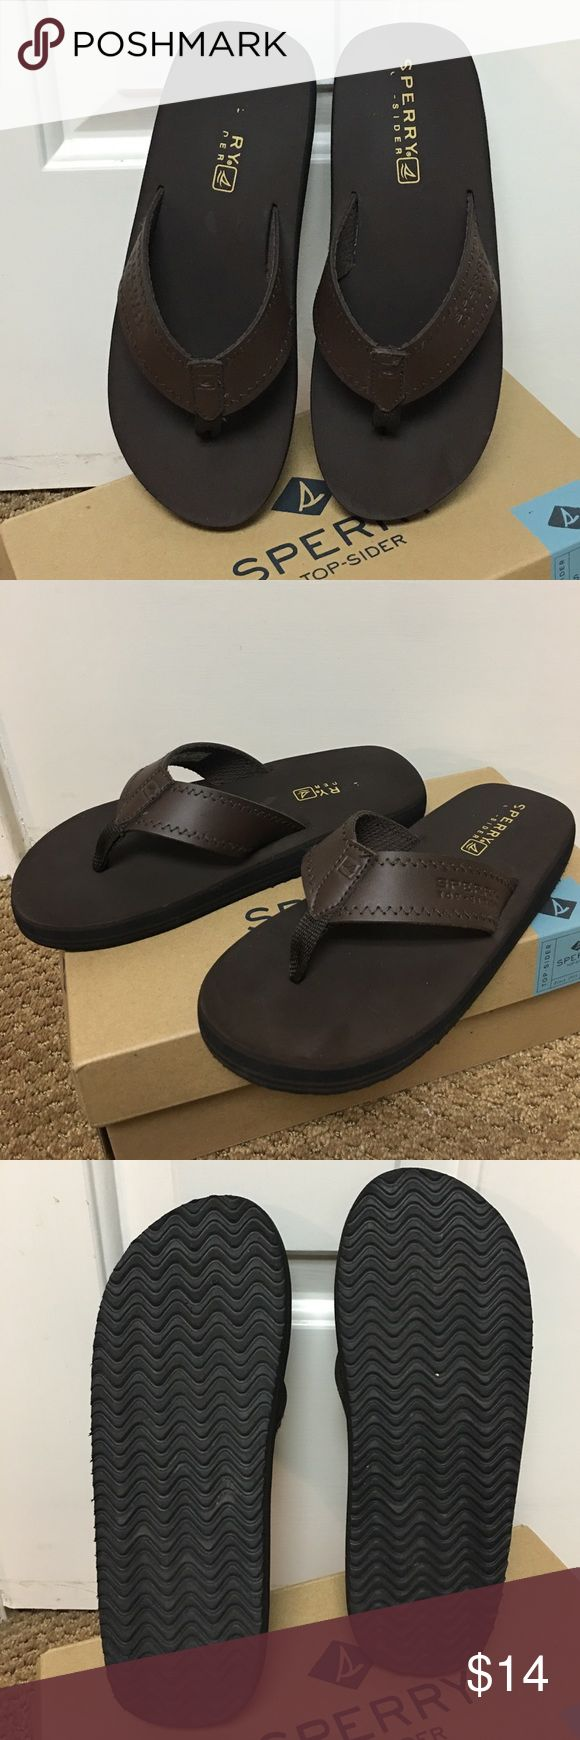 EUC Boys Sperry Brown Flip Flop Sandals - Sz 5M Boys Goby Brown Sperry Topsider Flip Flops Sandals in a size 5M.  Look great!  Probably only worn once. Sperry Top-Sider Shoes Sandals & Flip Flops